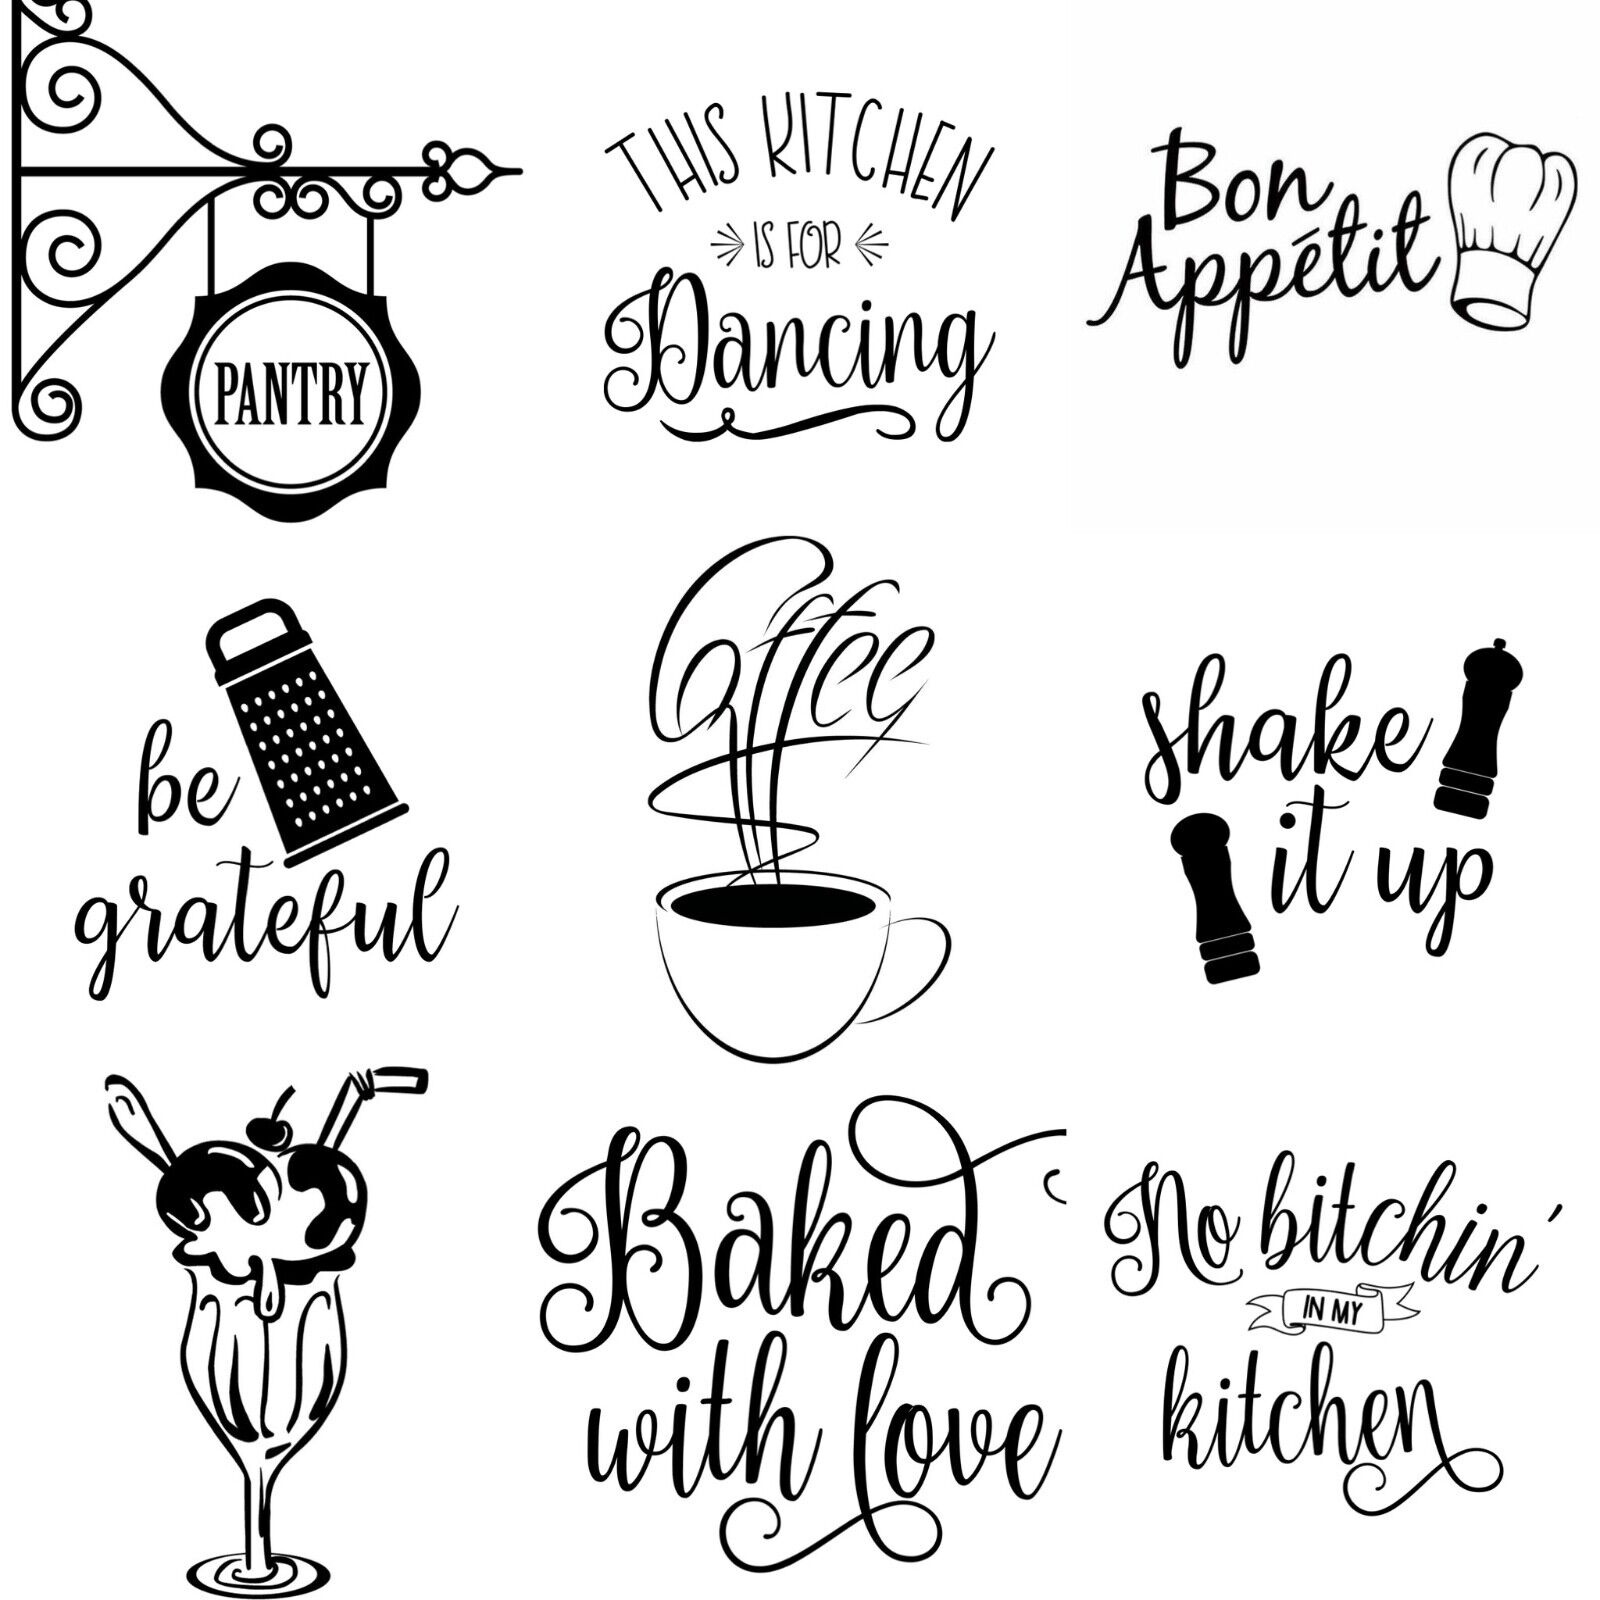 Home Decoration - Wall art stickers for kitchen, removable Home decor, quality vinyl decal quotes